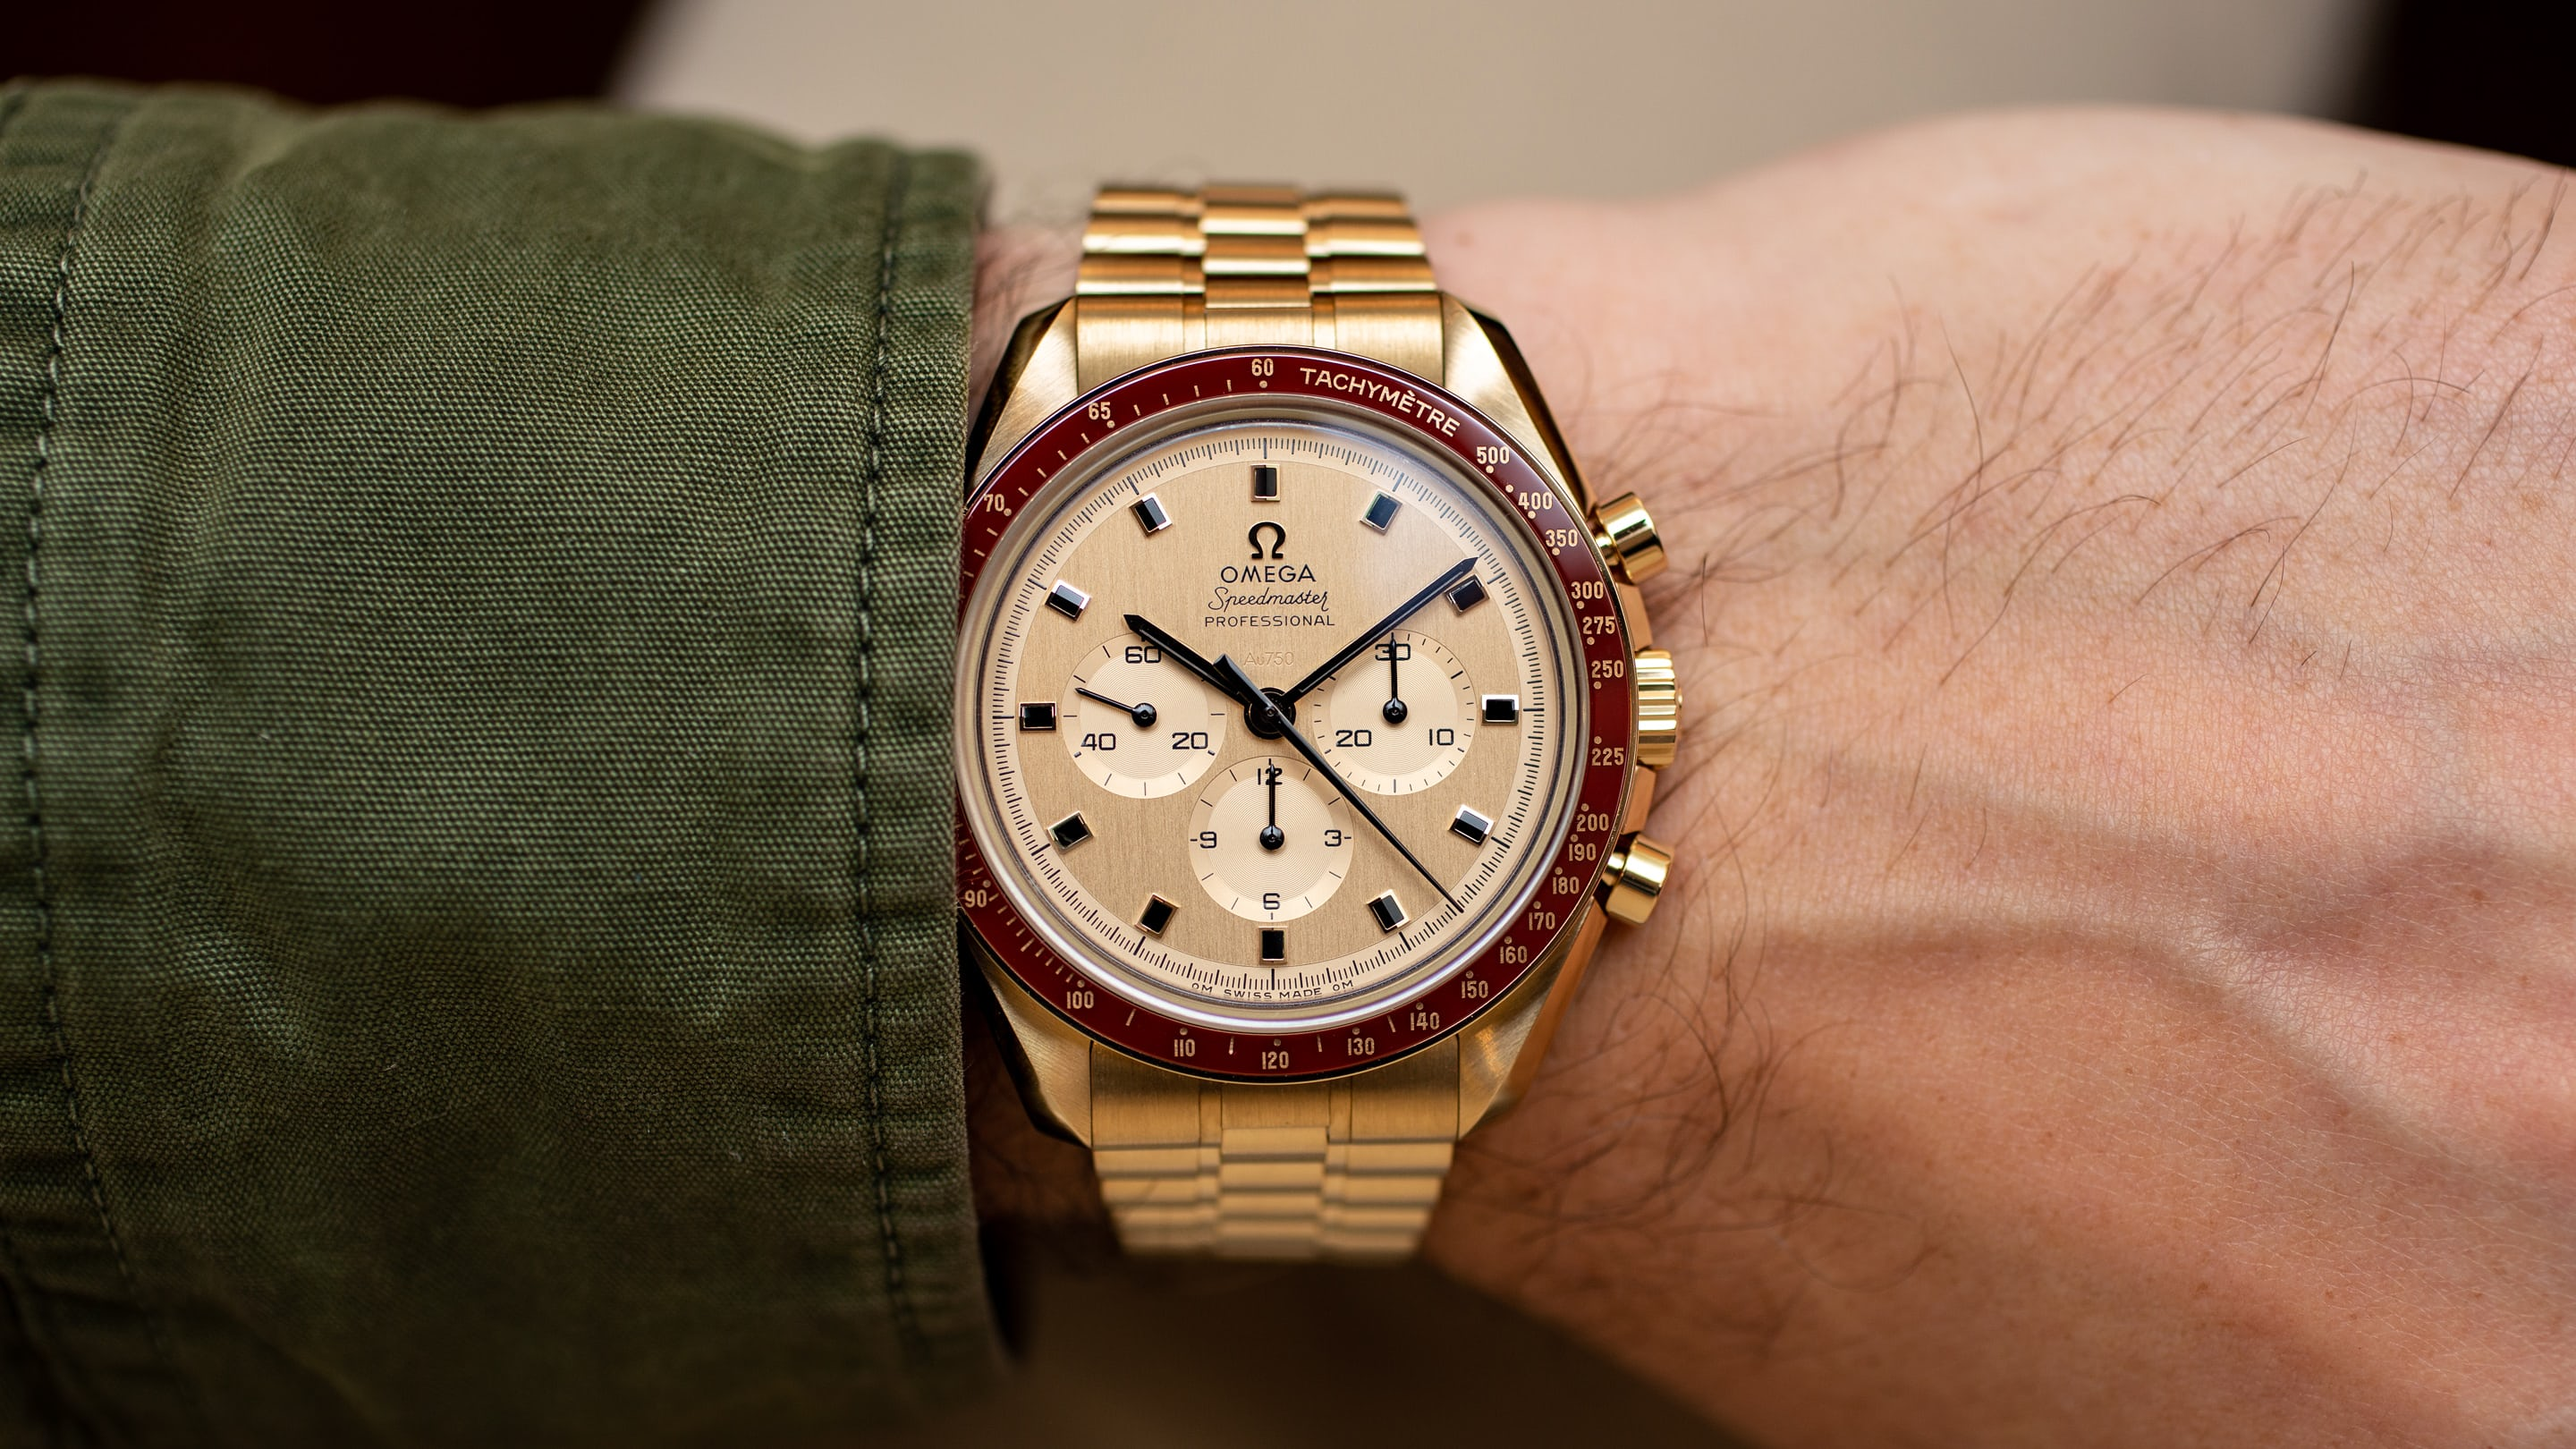 Introducing The Omega Speedmaster Apollo 11 Anniversary Limited